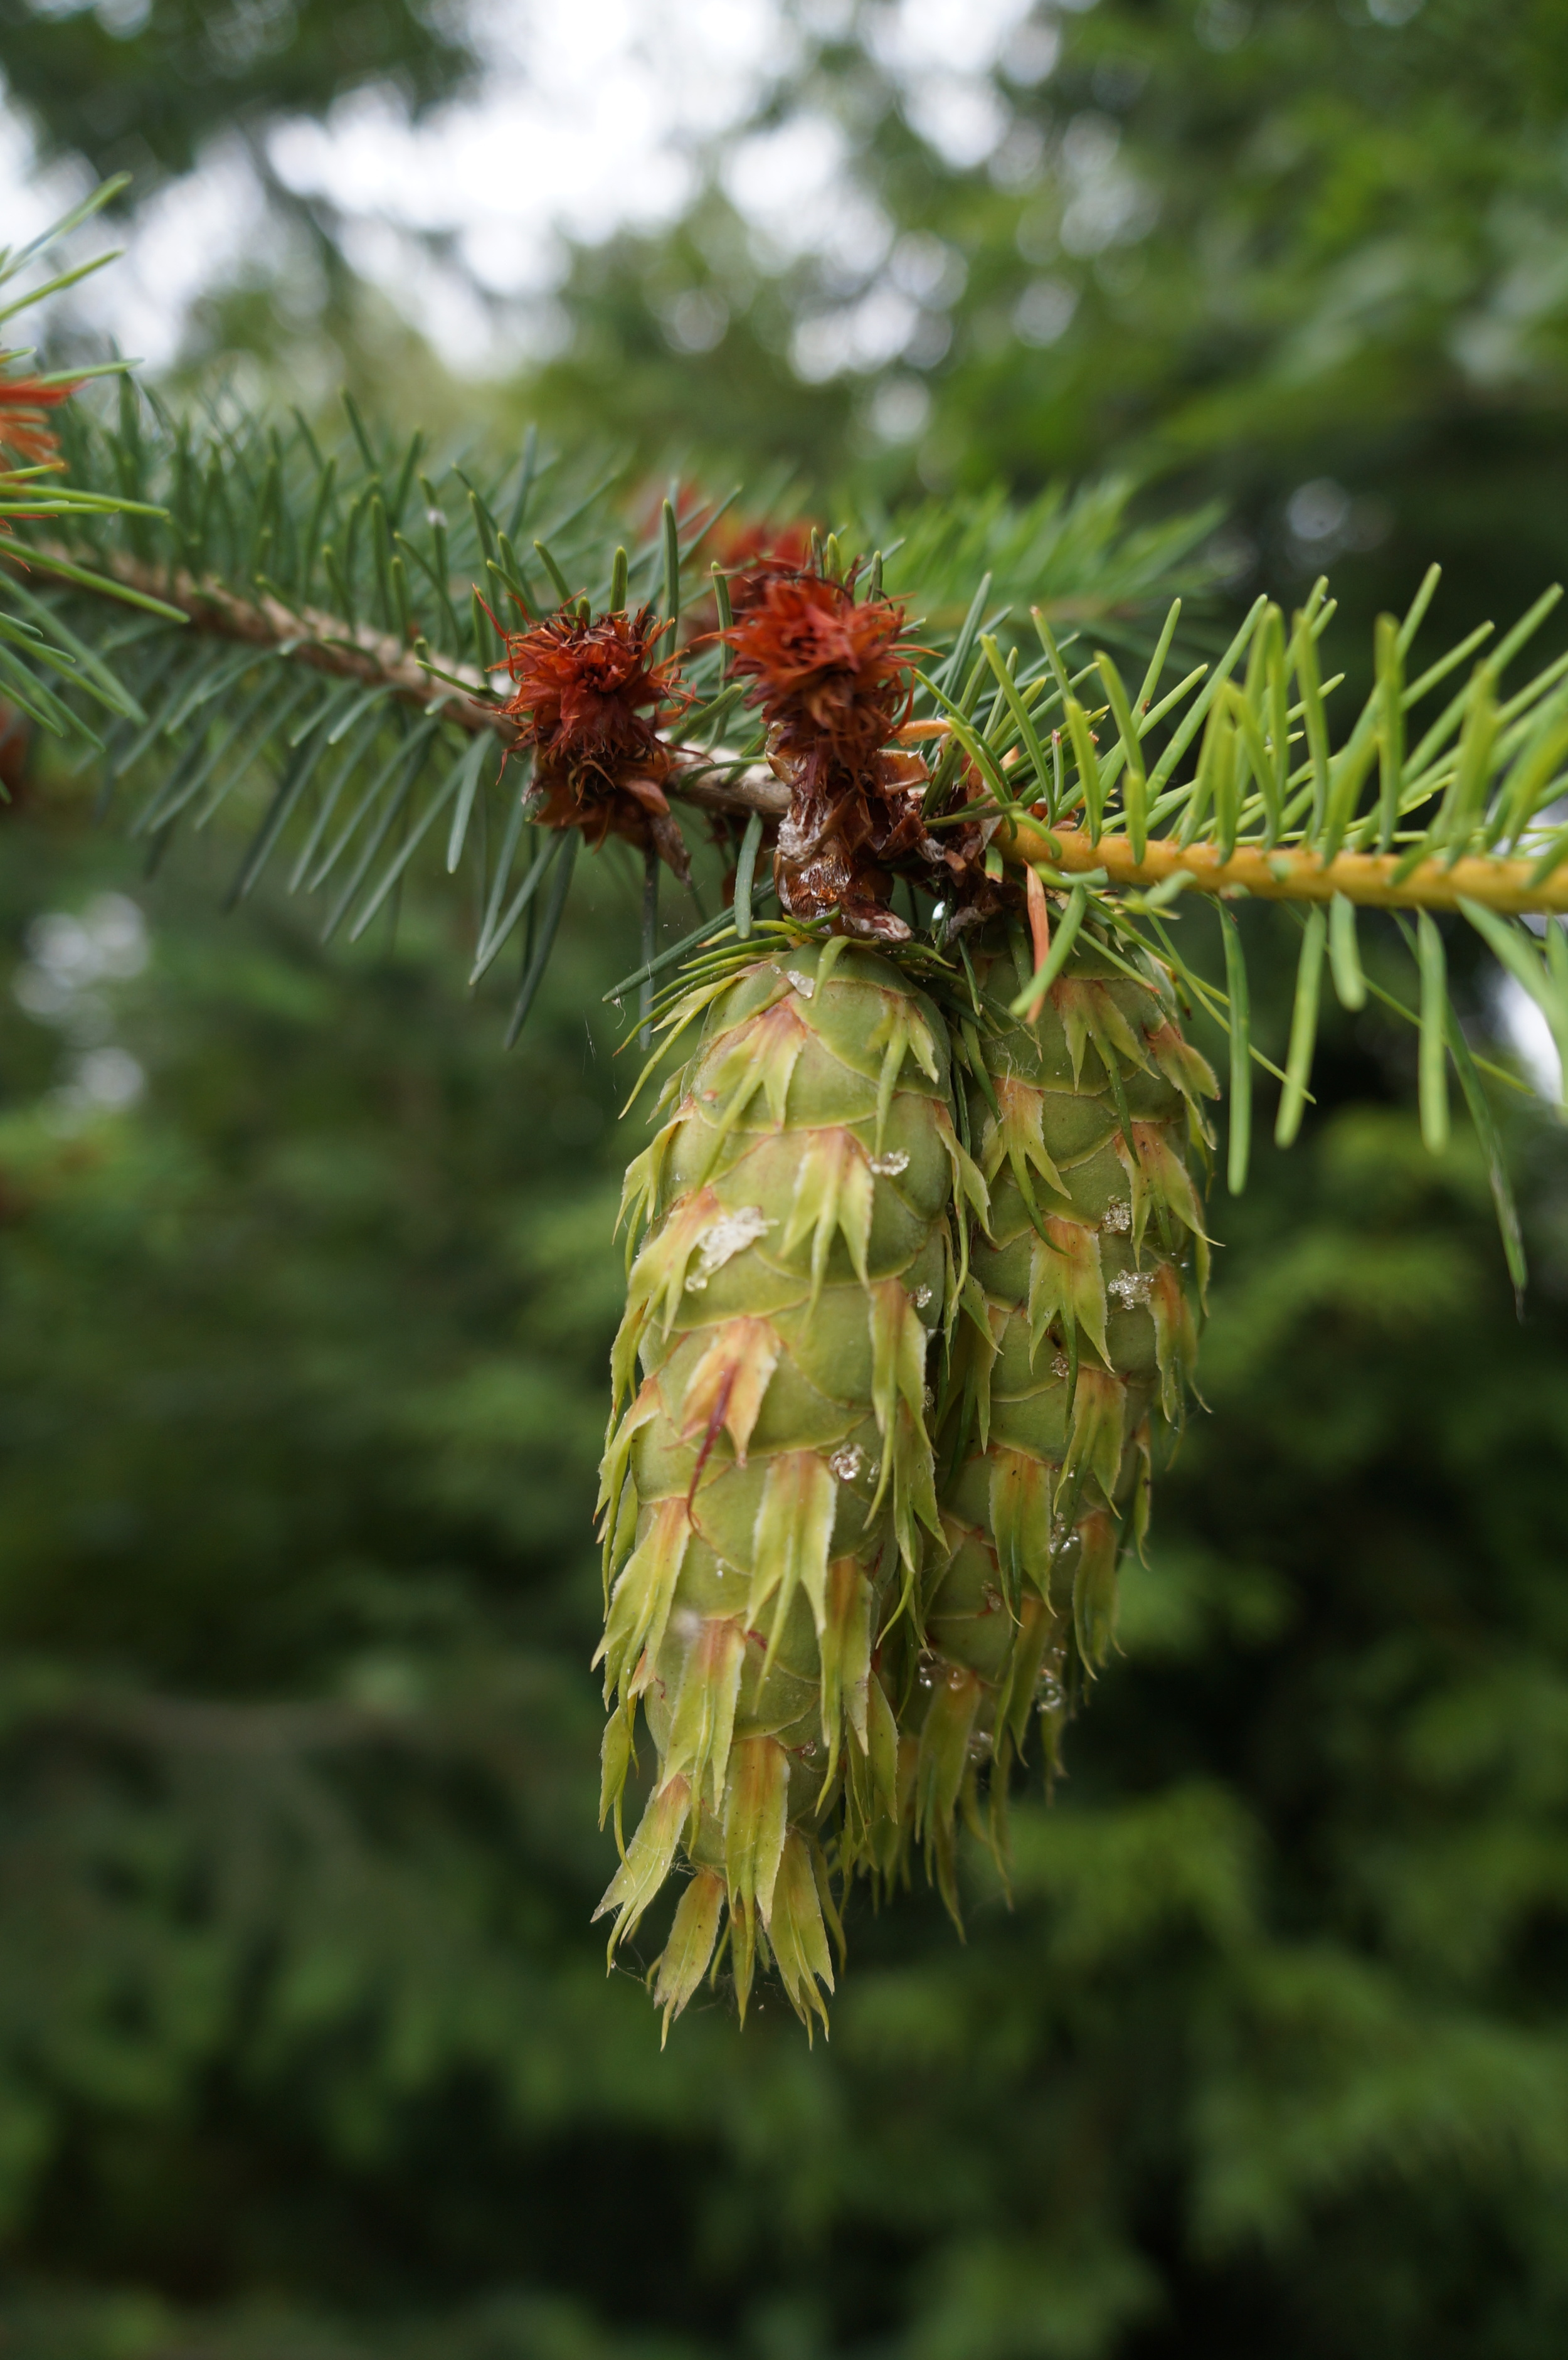 Female flowers and a maturing cone on a Douglas fir /  Pseudotsuga menziesii.   The female flowers will ripen into cones after being wind-pollinated by the little male flowers.